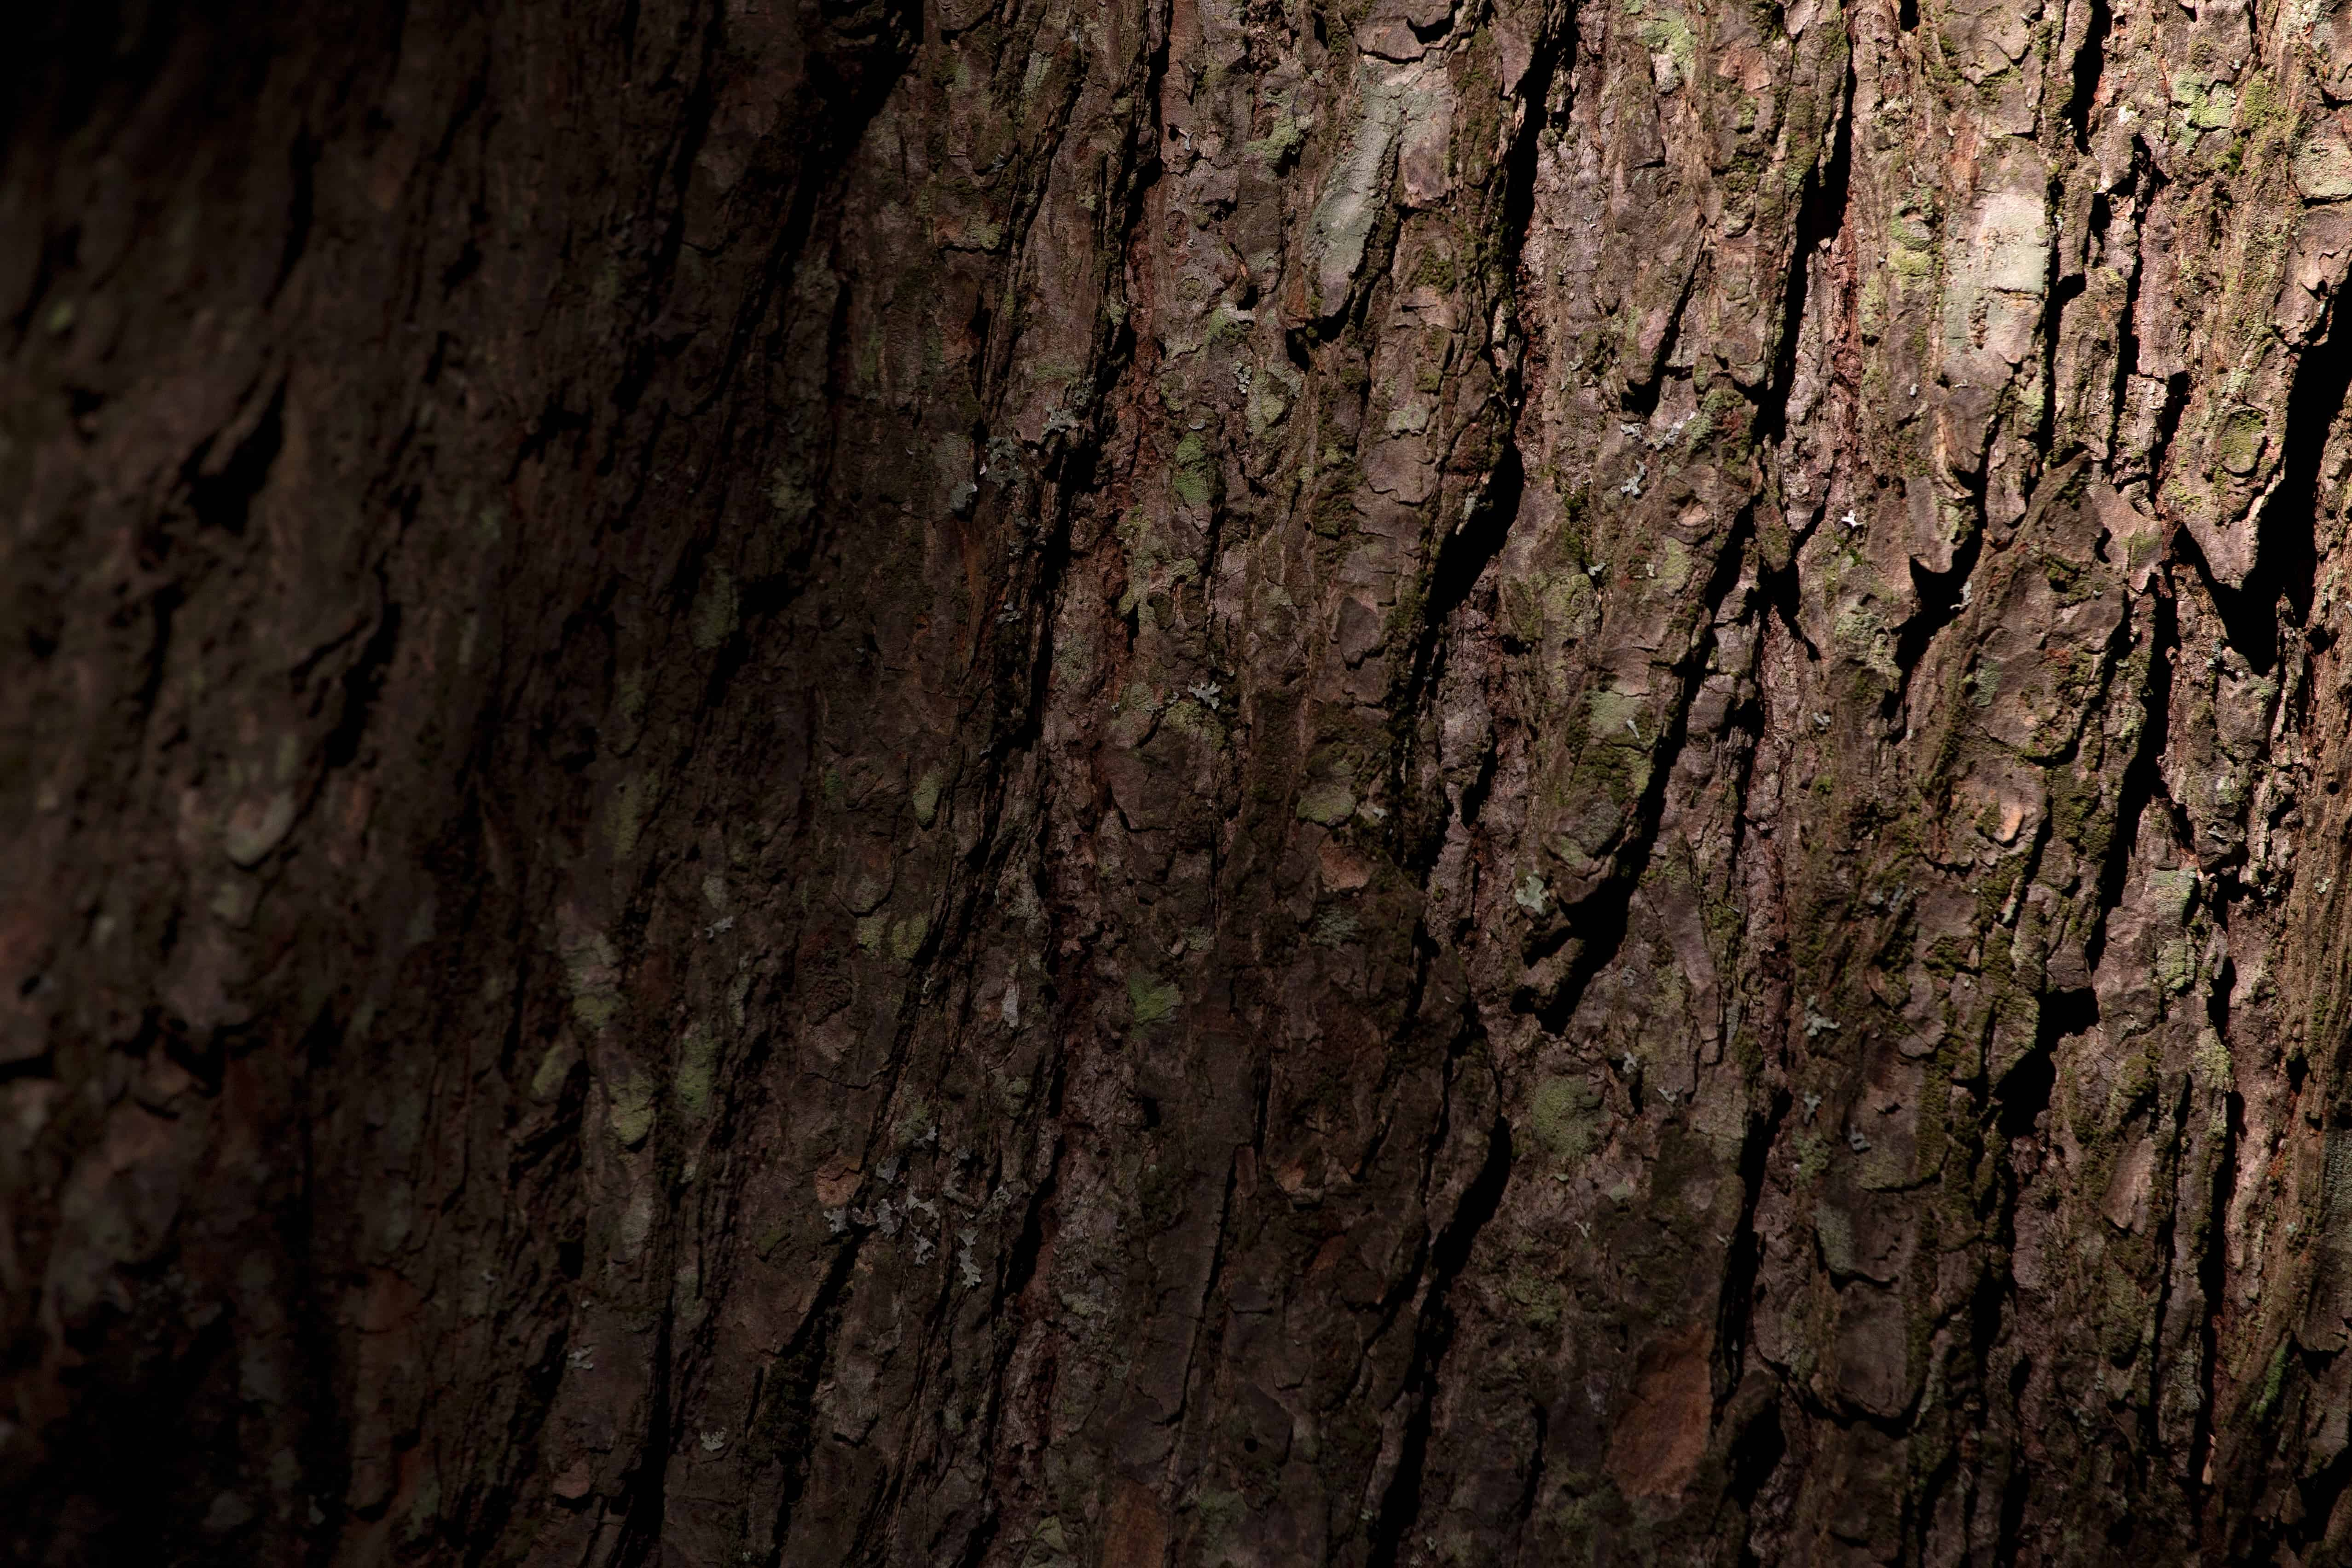 Wood Tree Bark Nature Texture Shadow Material Surface